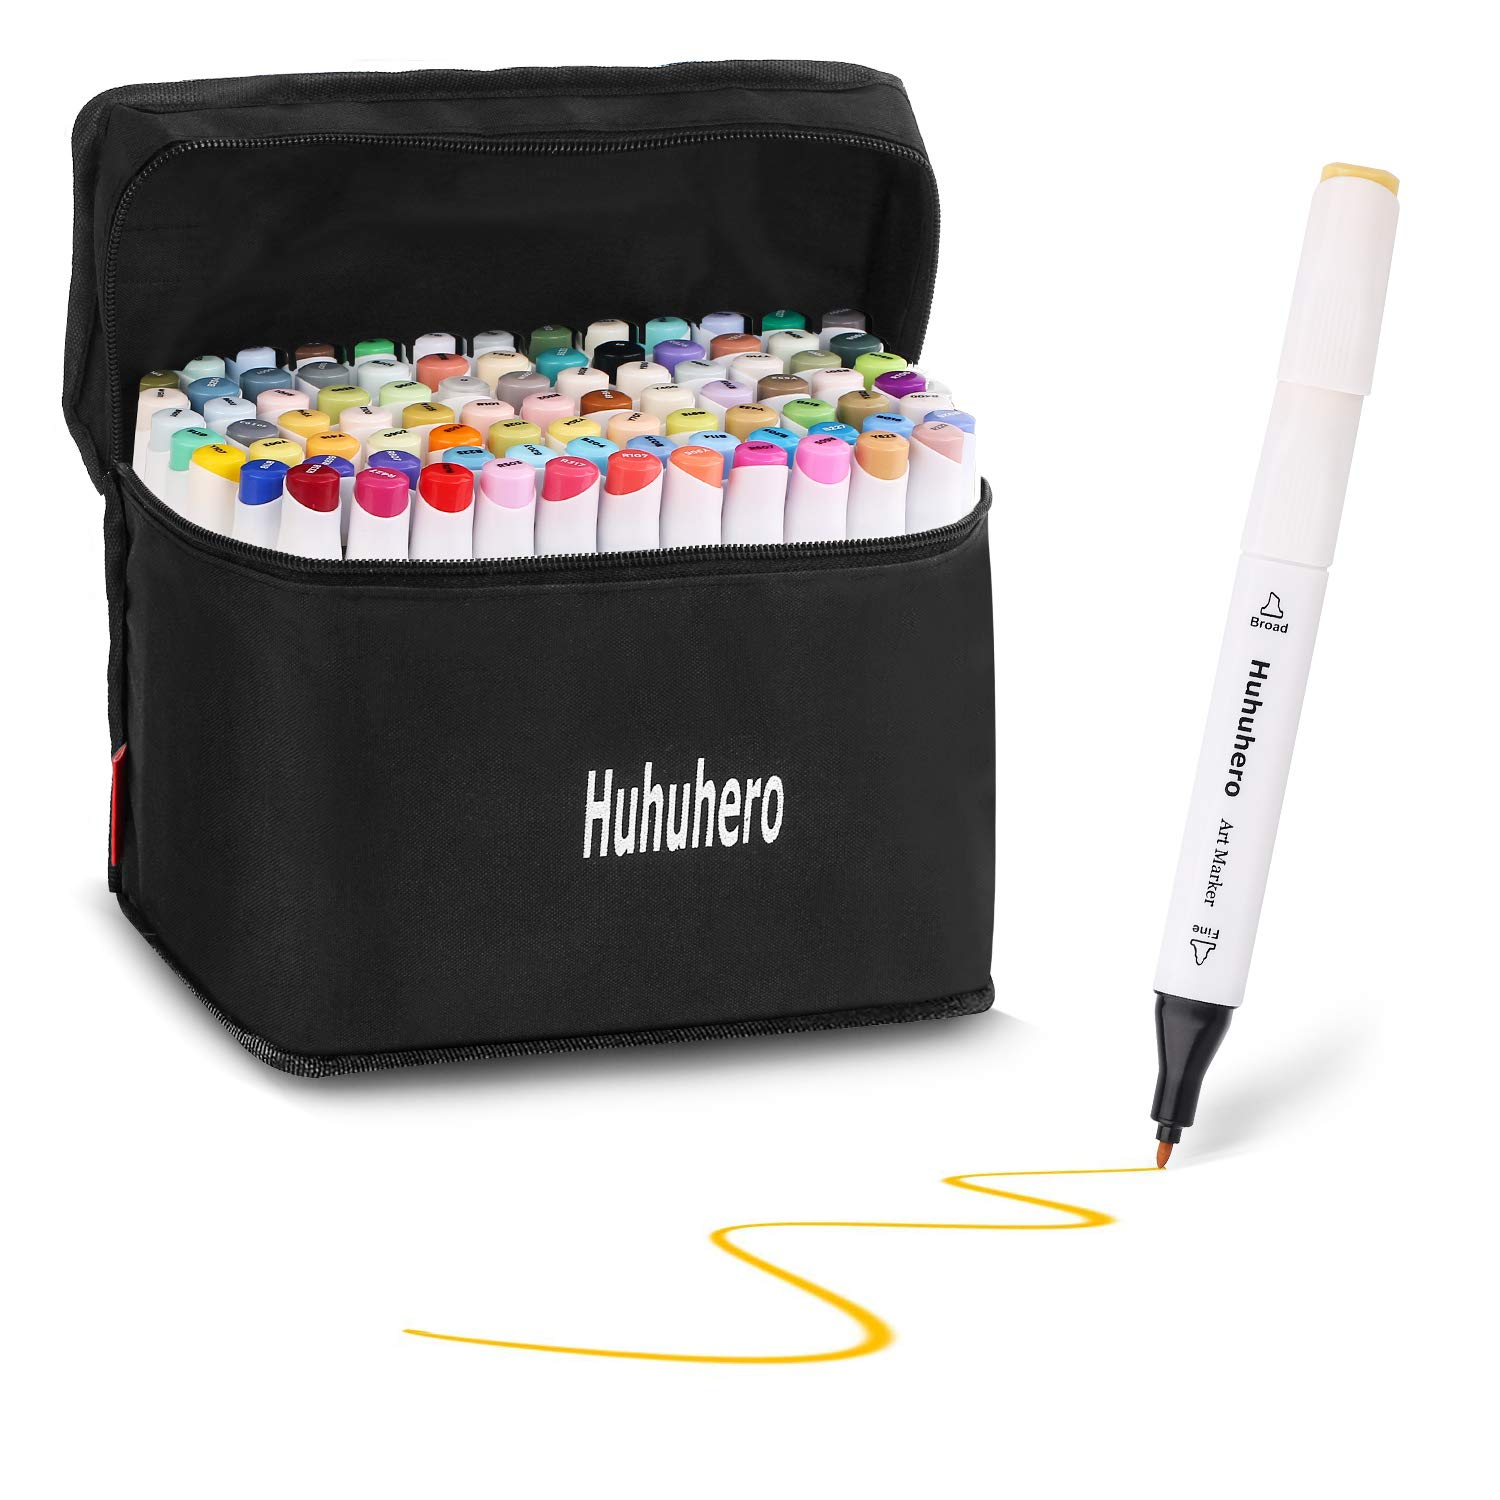 88 Colors Marker Pens Set, Dual Tips Permanent Marker Pens Highlighters with Carrying Case Perfect for Drawing Sketching Adult Coloring Highlighting and Underlining Huhuhero